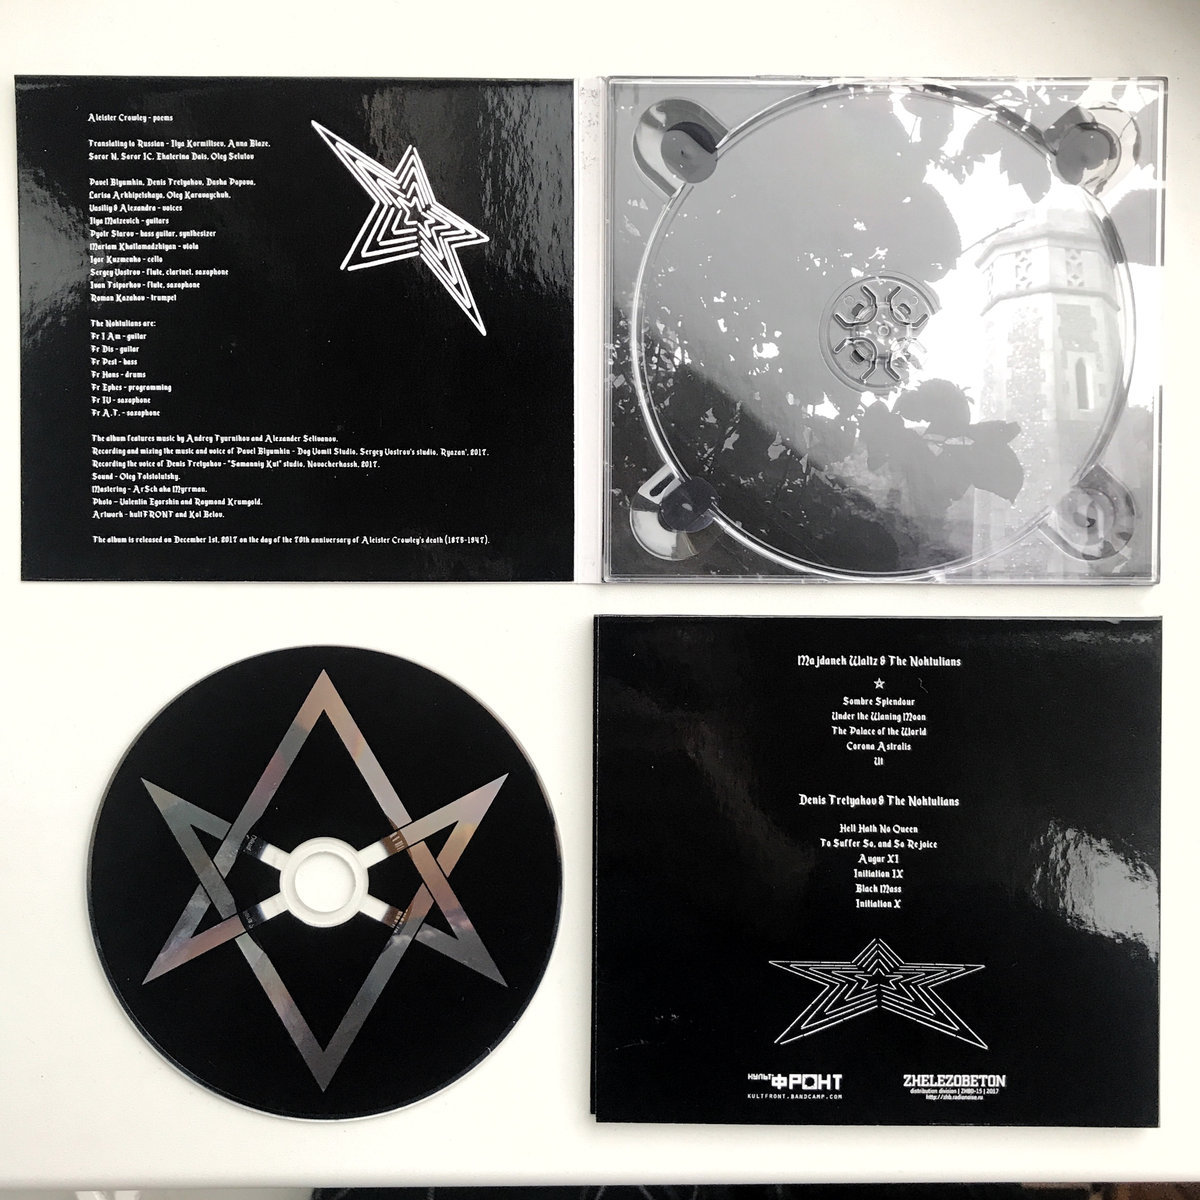 MAJDANEK WALTZ / DENIS TRETYAKOV / THE NOKTULIANS - Pentagram CD - 画像3